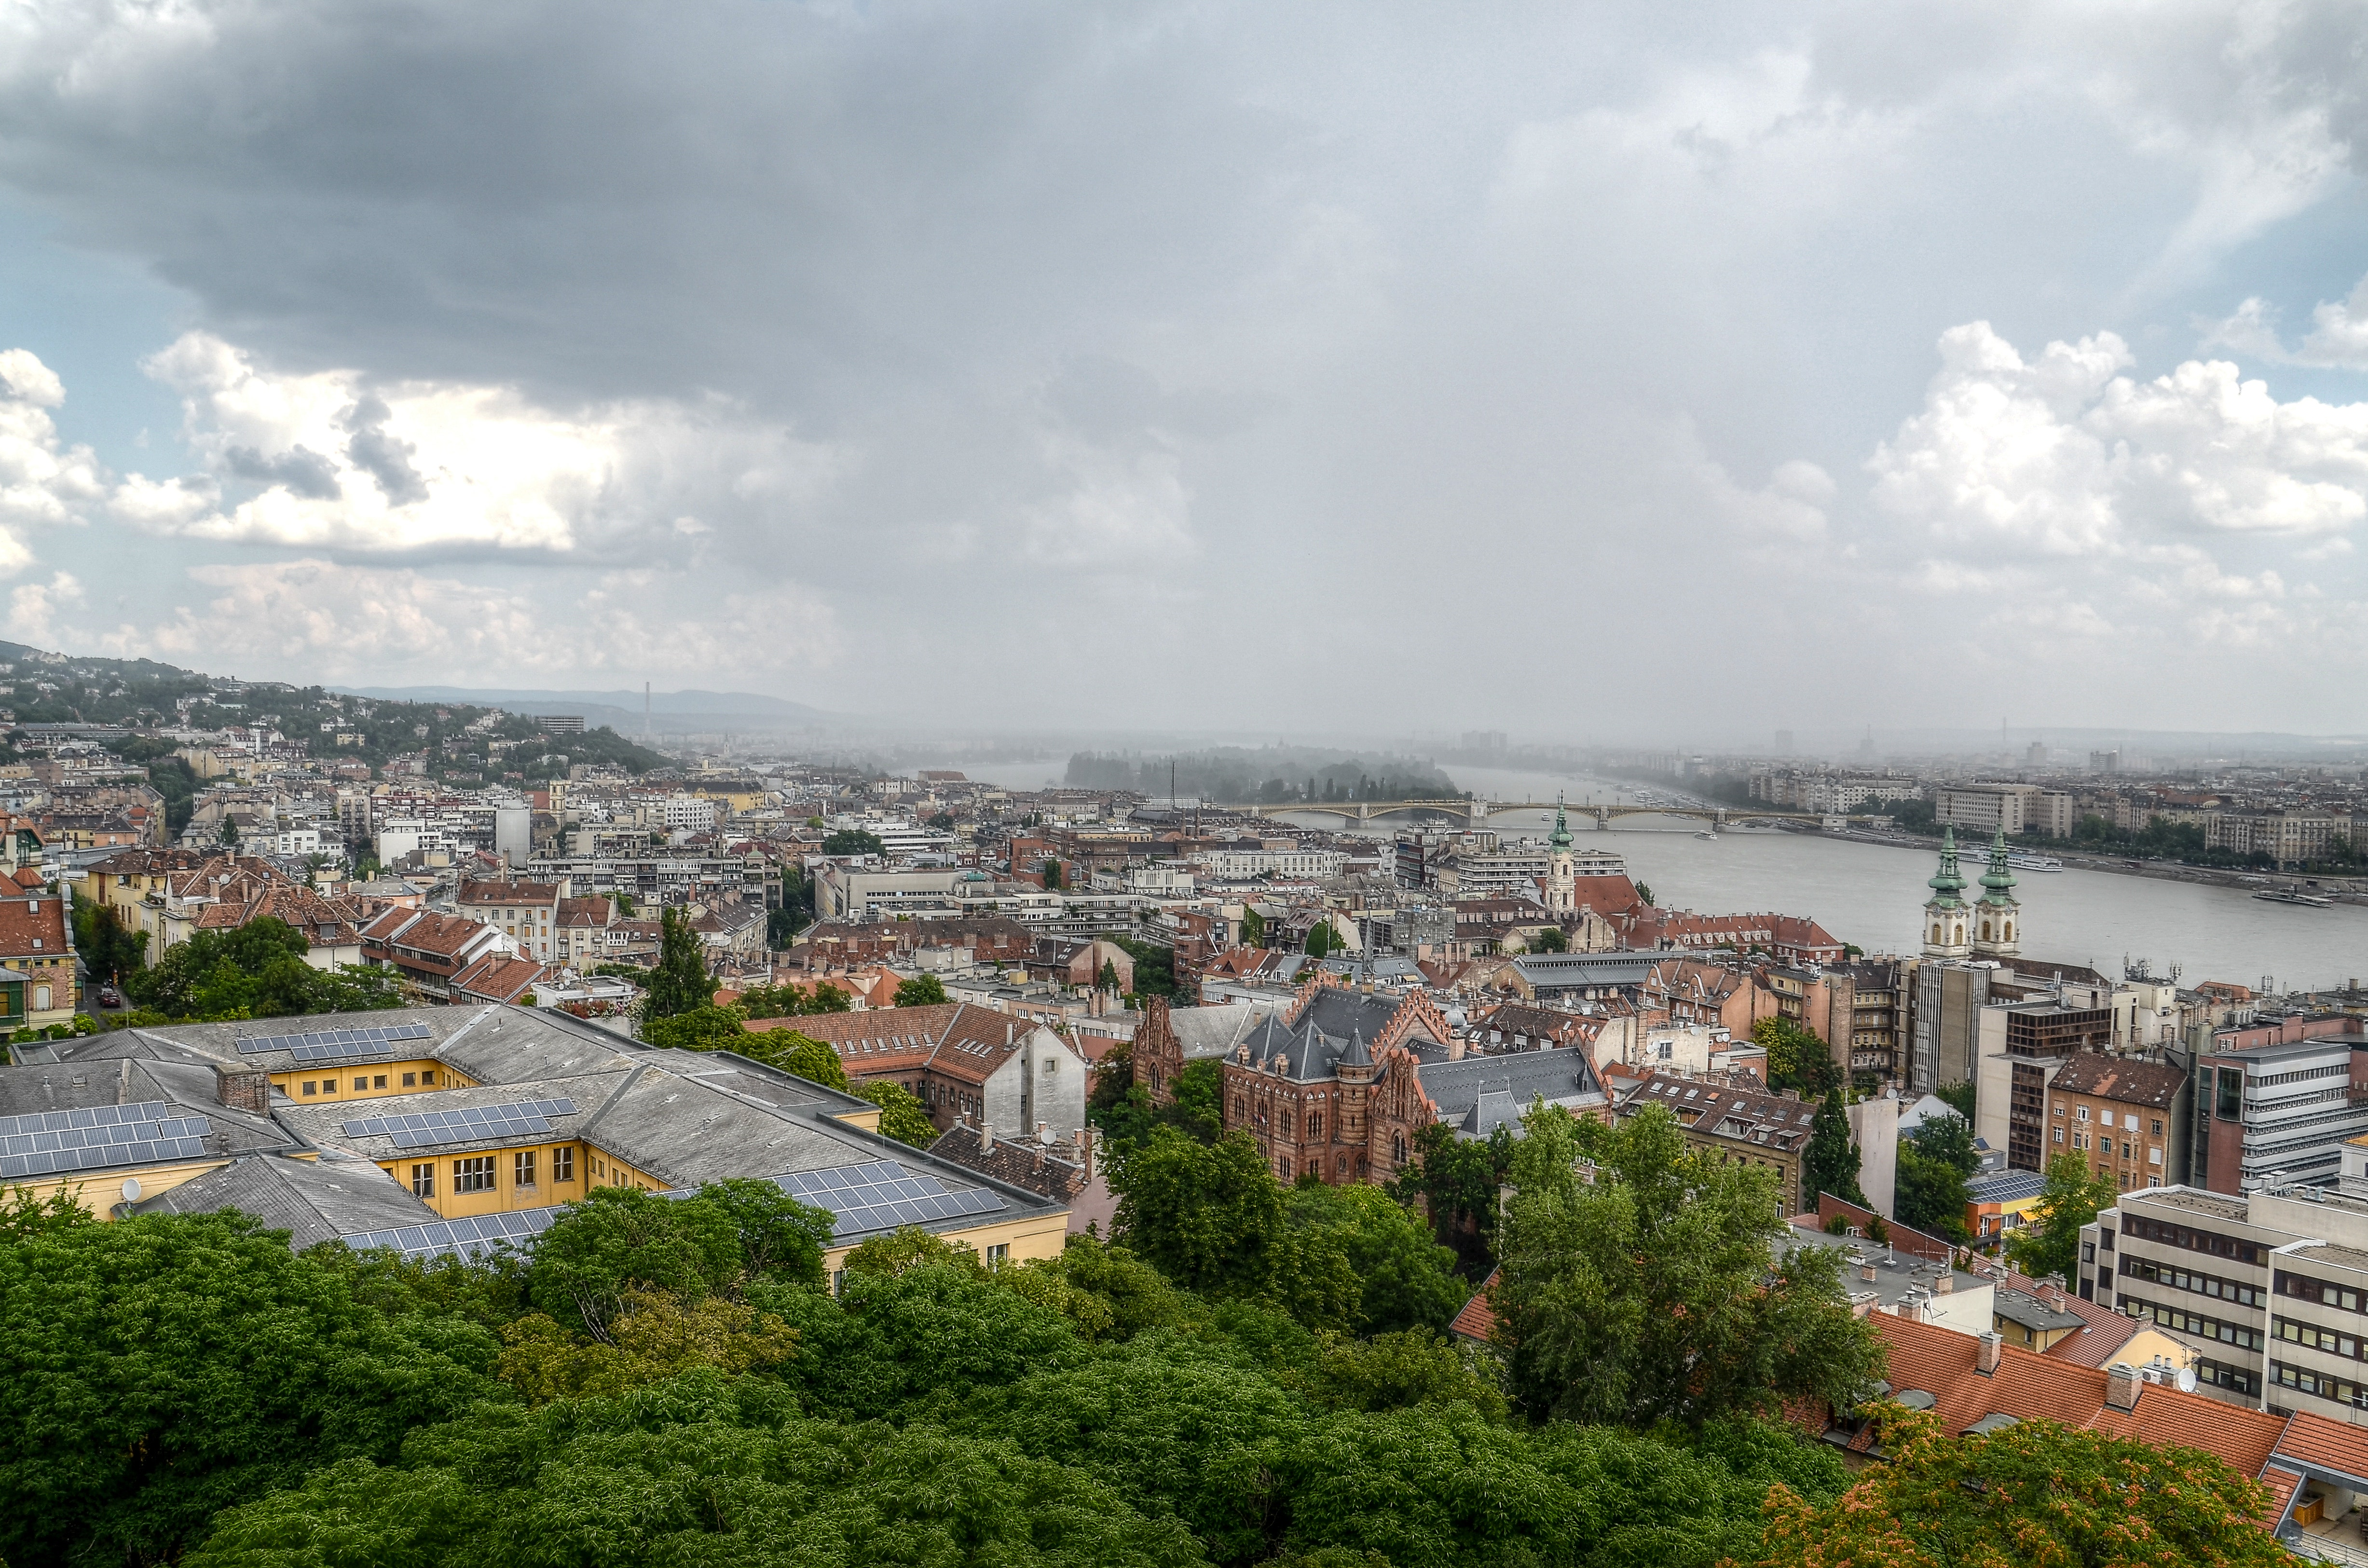 Aerial Photo Of A City Near Body Of Water, Budapest, Buildings, City, Cityscape, HQ Photo